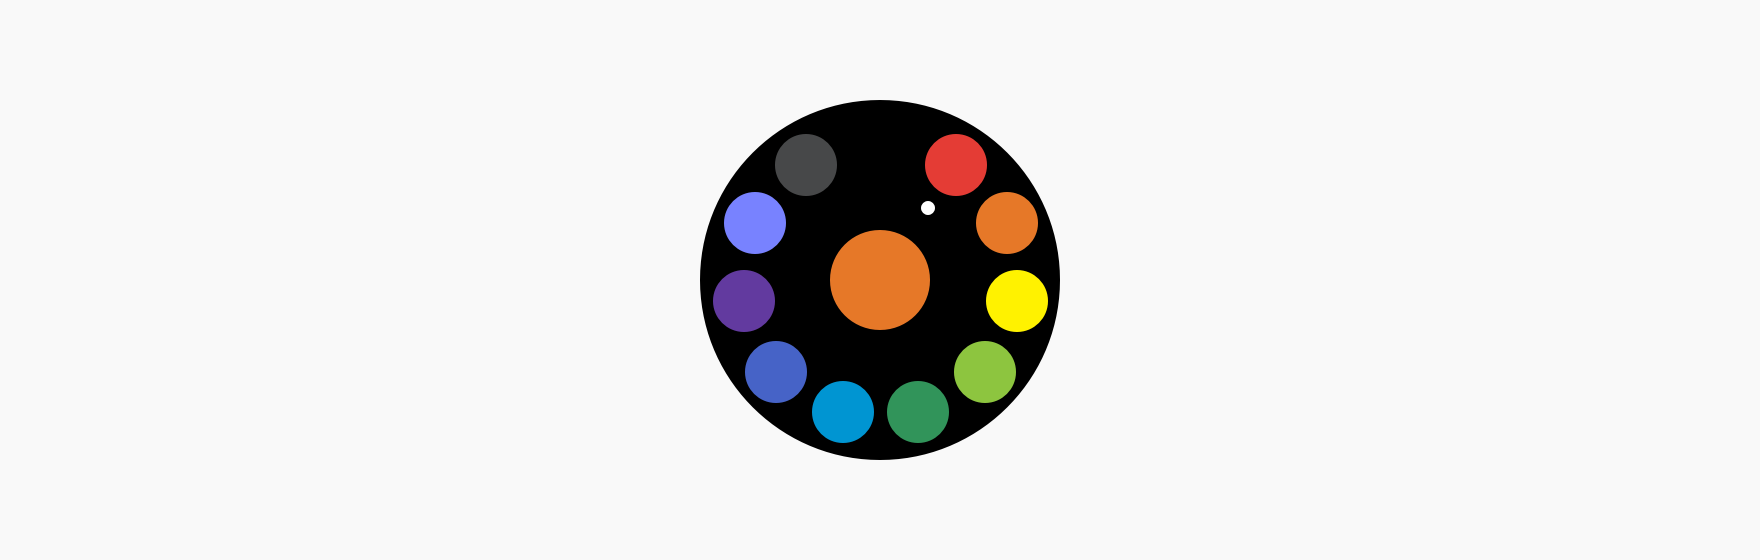 A color picker is provided as a rotary selector and picks a color.